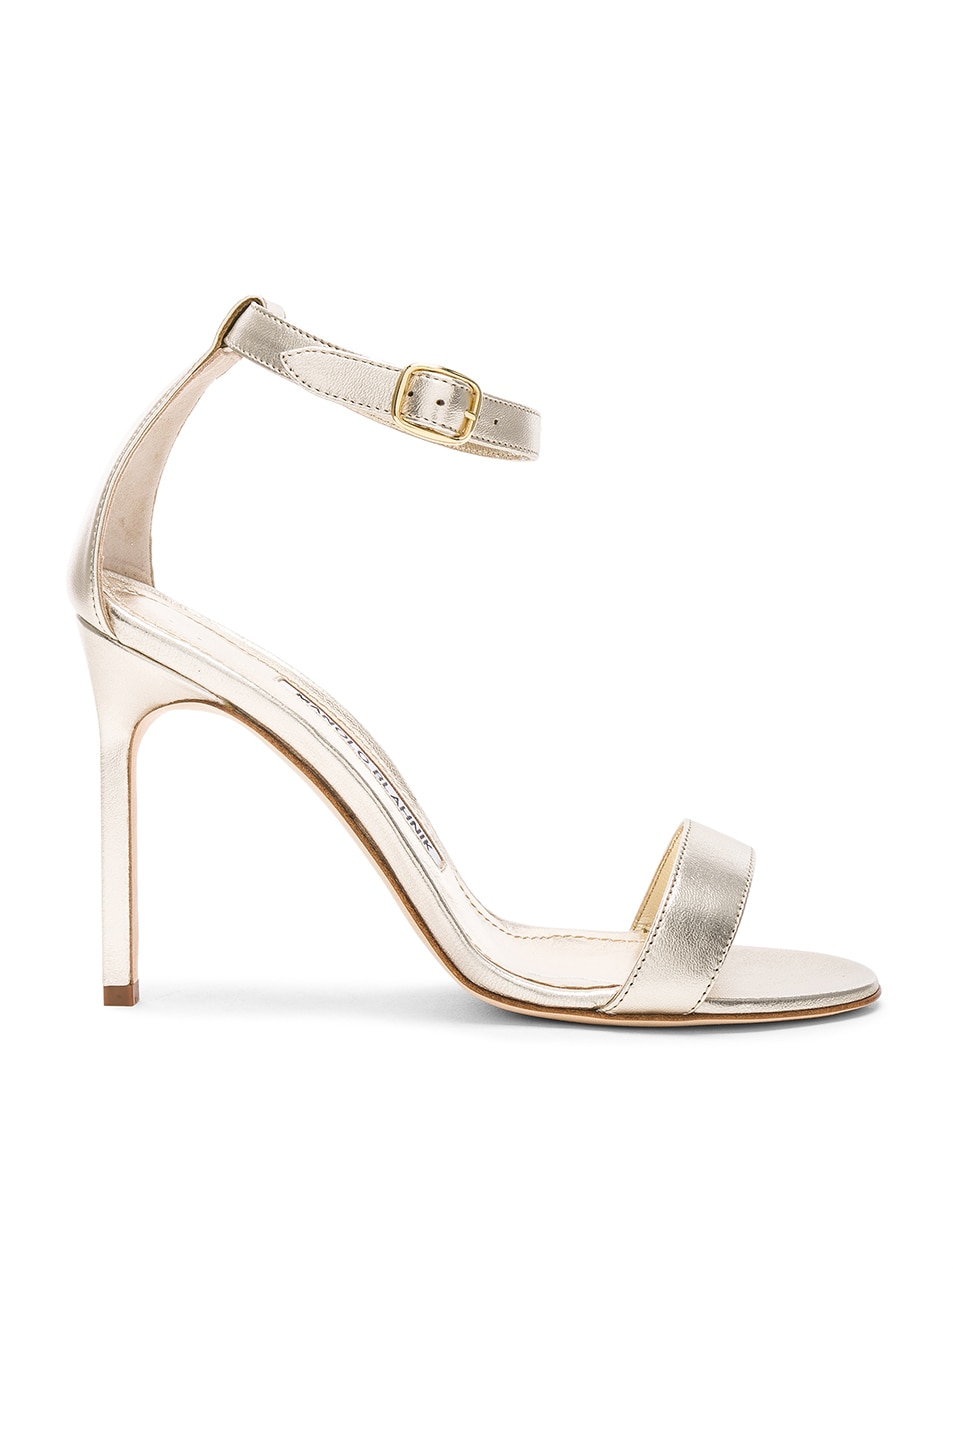 Image 1 of Manolo Blahnik Leather Chaos 105 Heels in Light Gold Leather